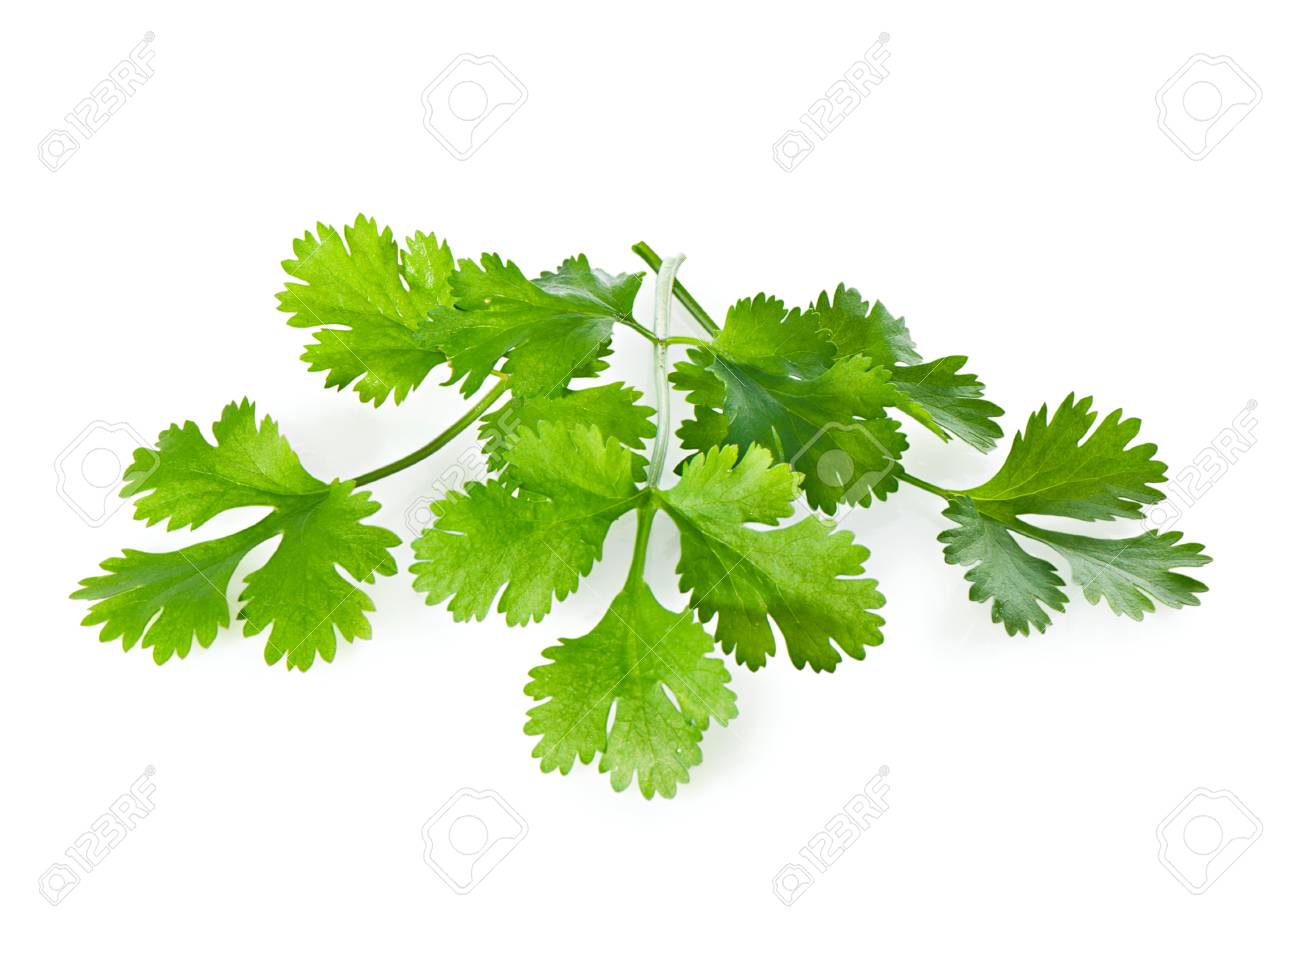 Three Fresh Coriander leaves on a white background close-up. - 42314453